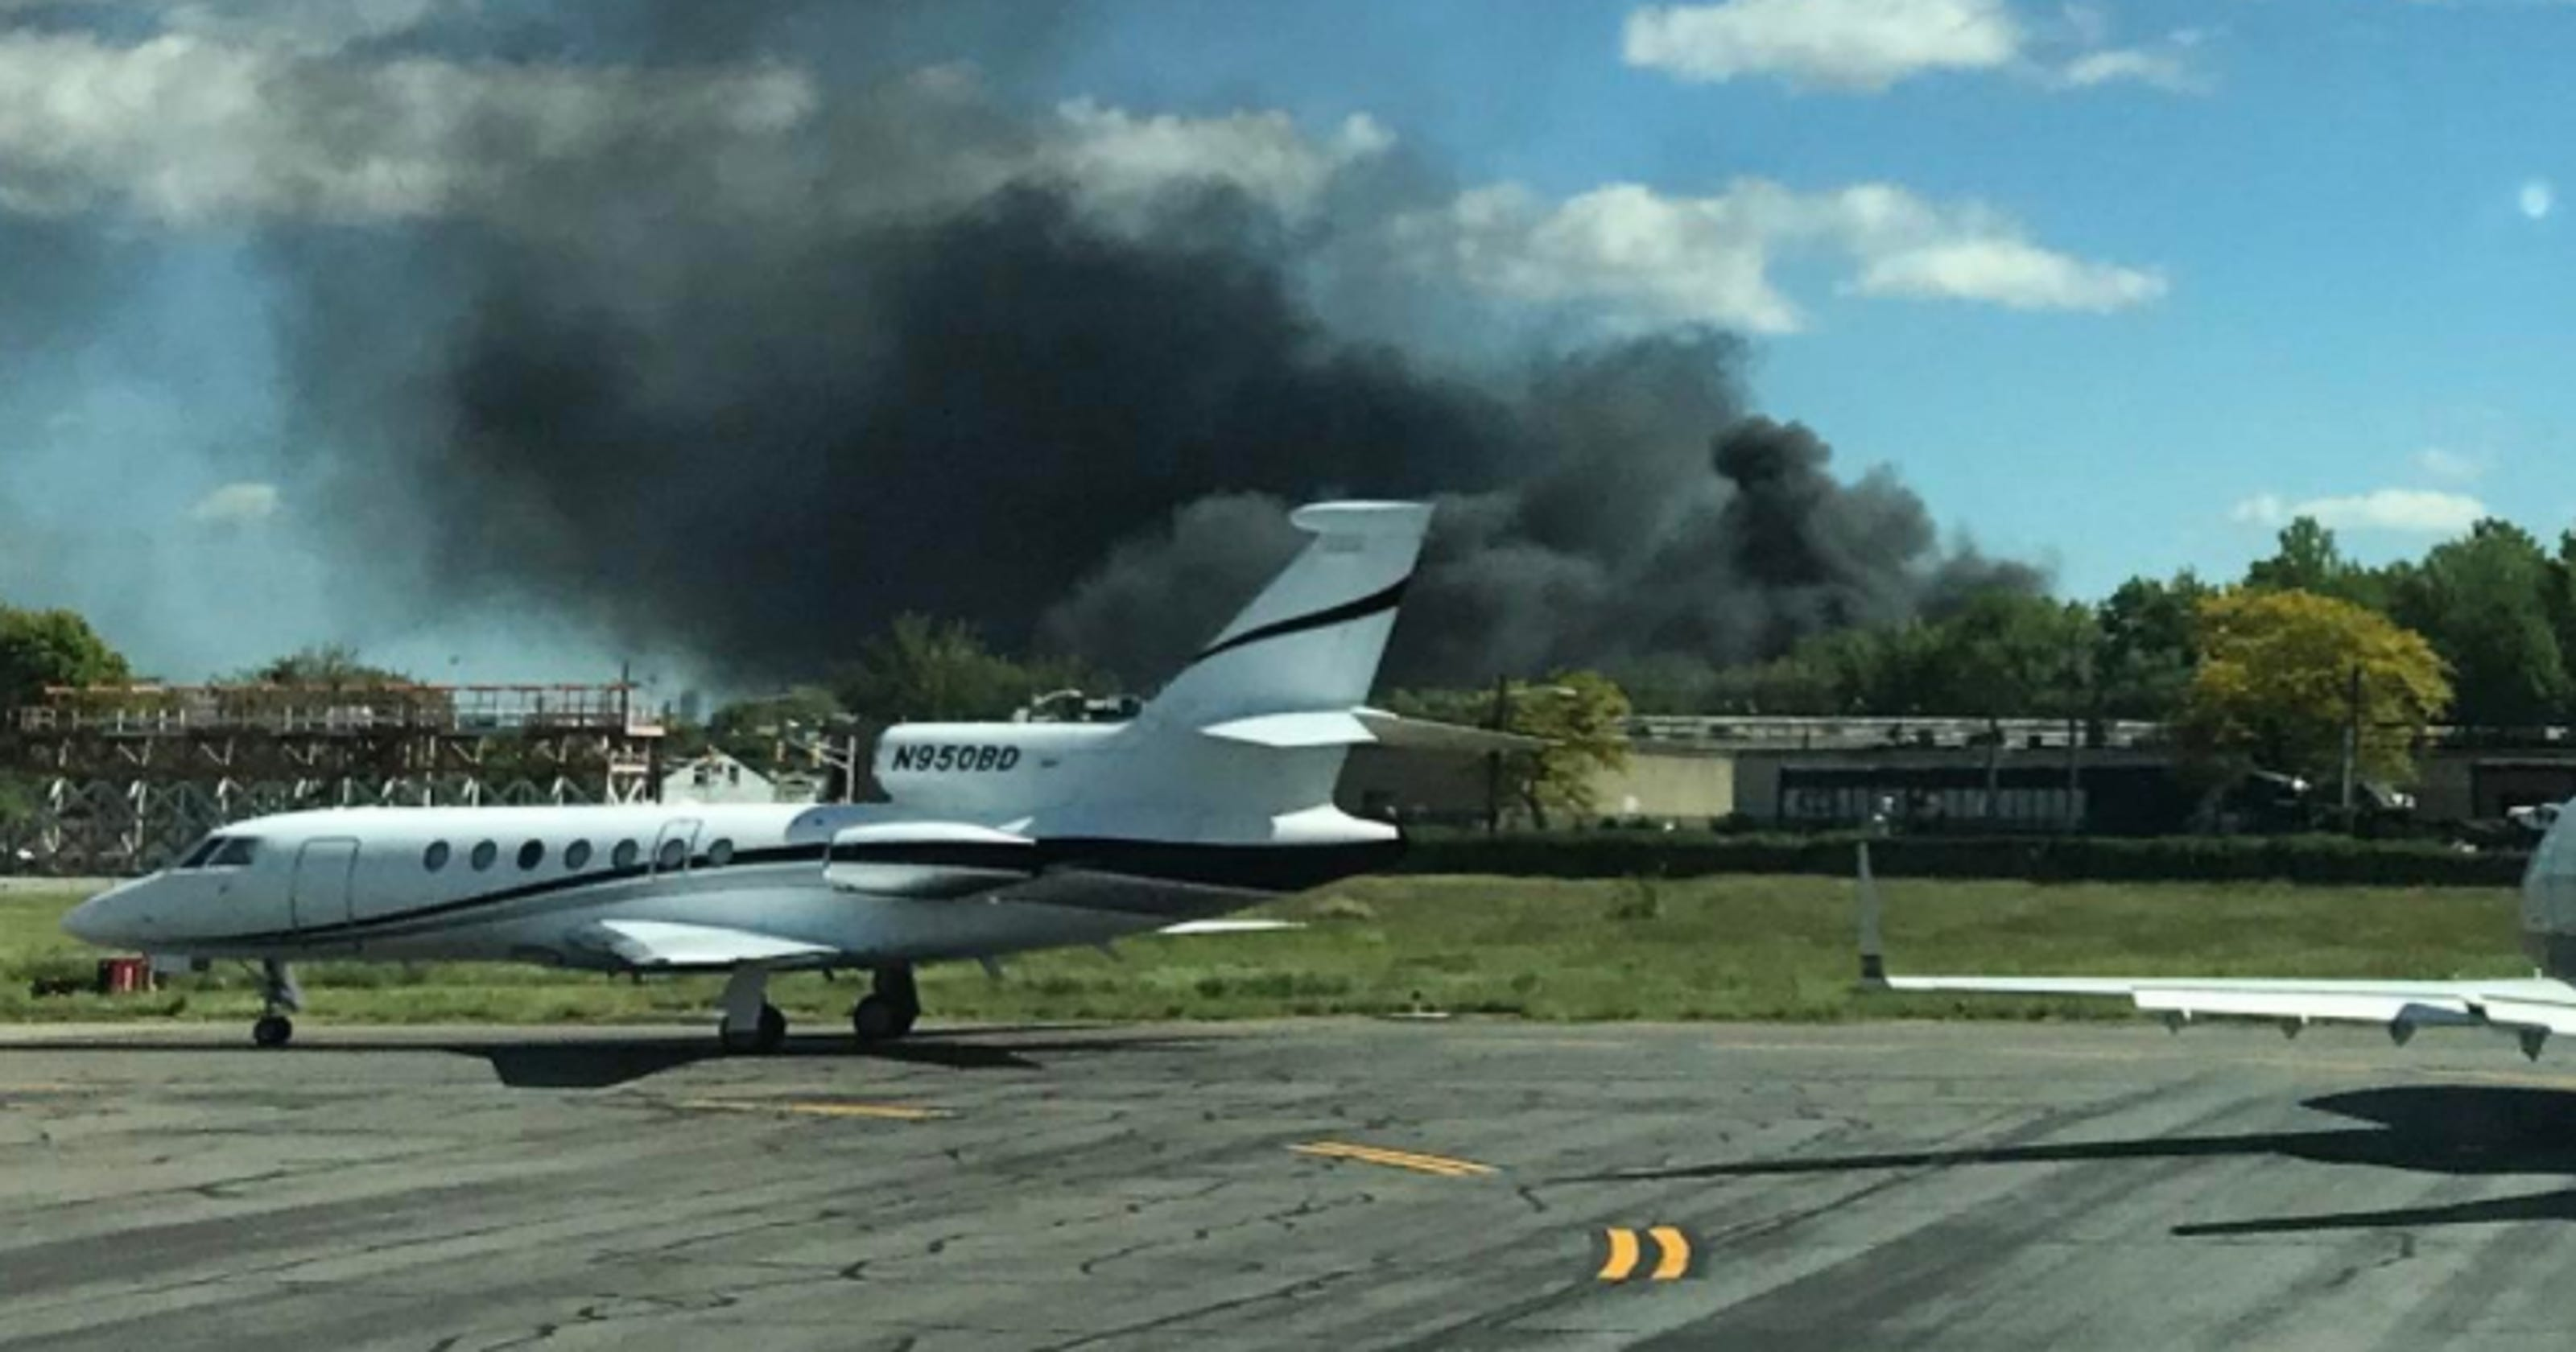 pit voice recorder found in N.J. Learjet crash on helicopter crash investigation, fire investigation, plane crashes on property, police crash investigation, plane home, air force crash investigation, truck accident investigation, bus accident investigation, plane patent, airbus crash investigation, air plane investigation, aircraft crash investigation,